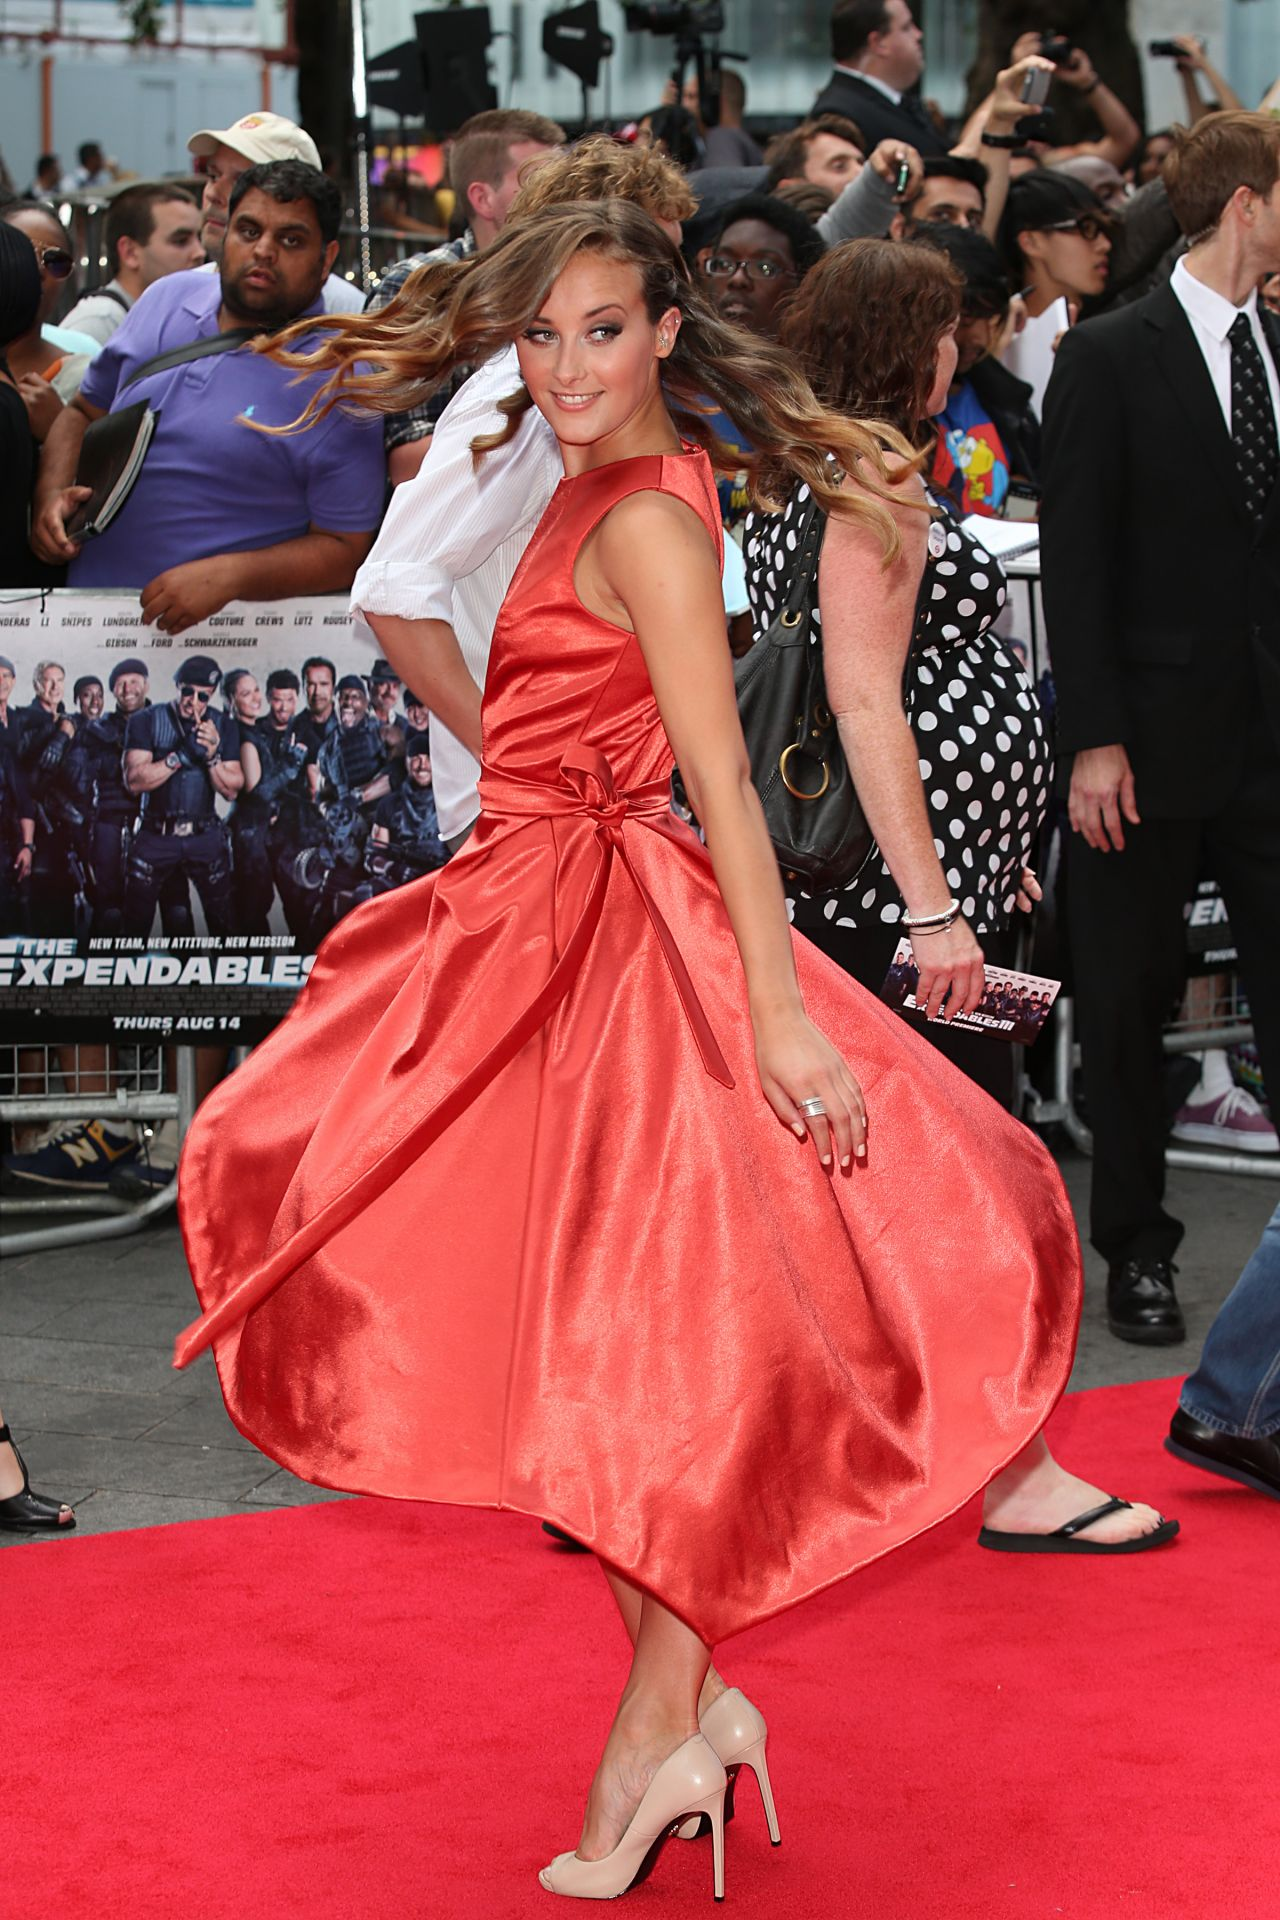 THE EXPENDABLES 3 World Premiere in London - April Pearson